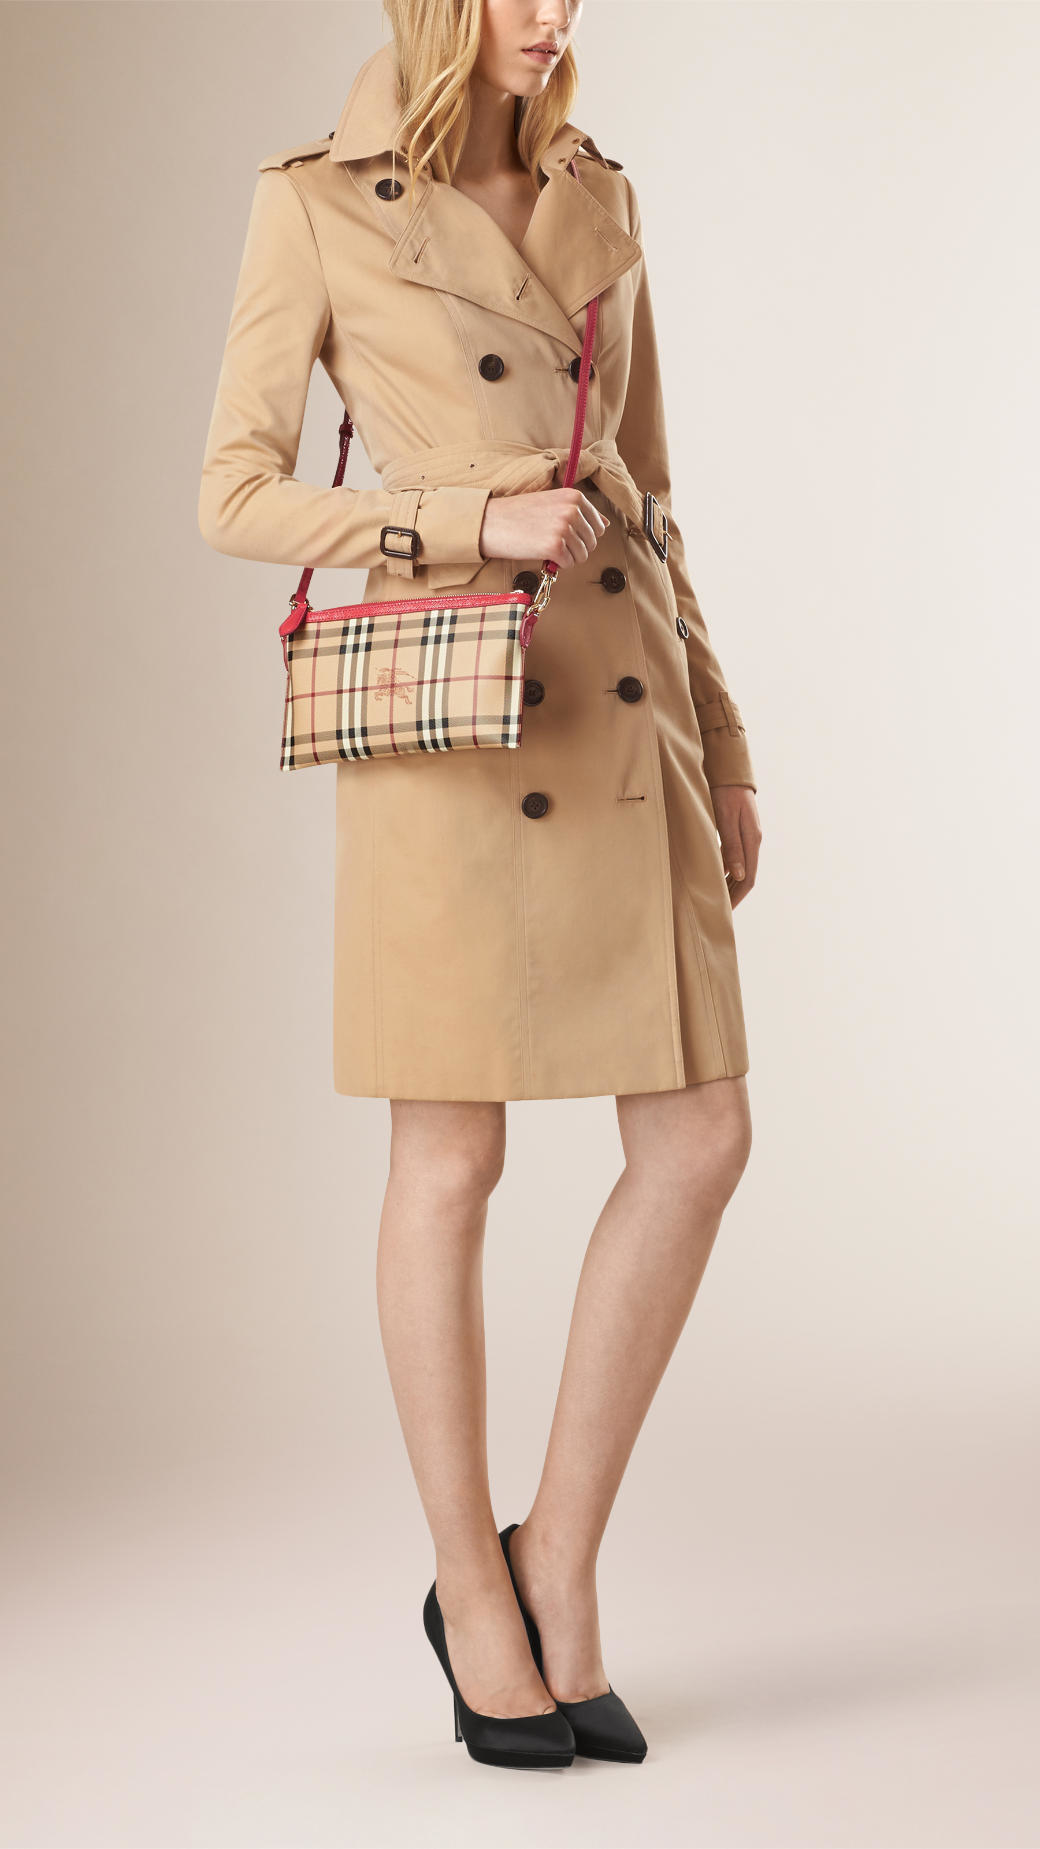 64532c972aff Lyst - Burberry Haymarket Check Clutch Bag in Natural